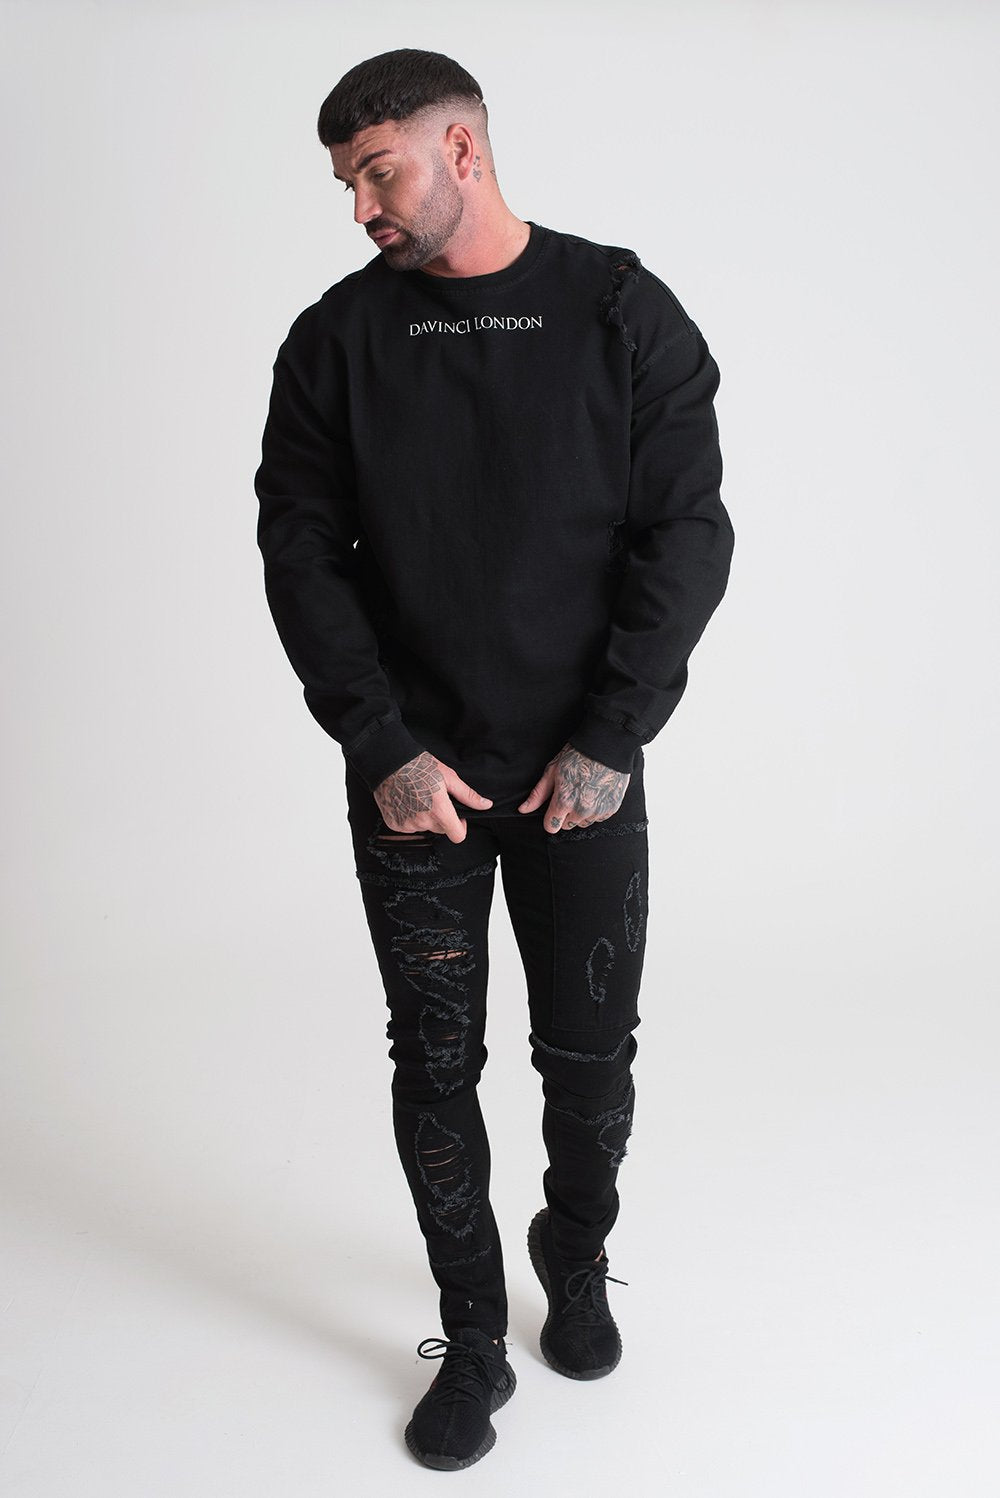 Davinci Distressed Jumper Black